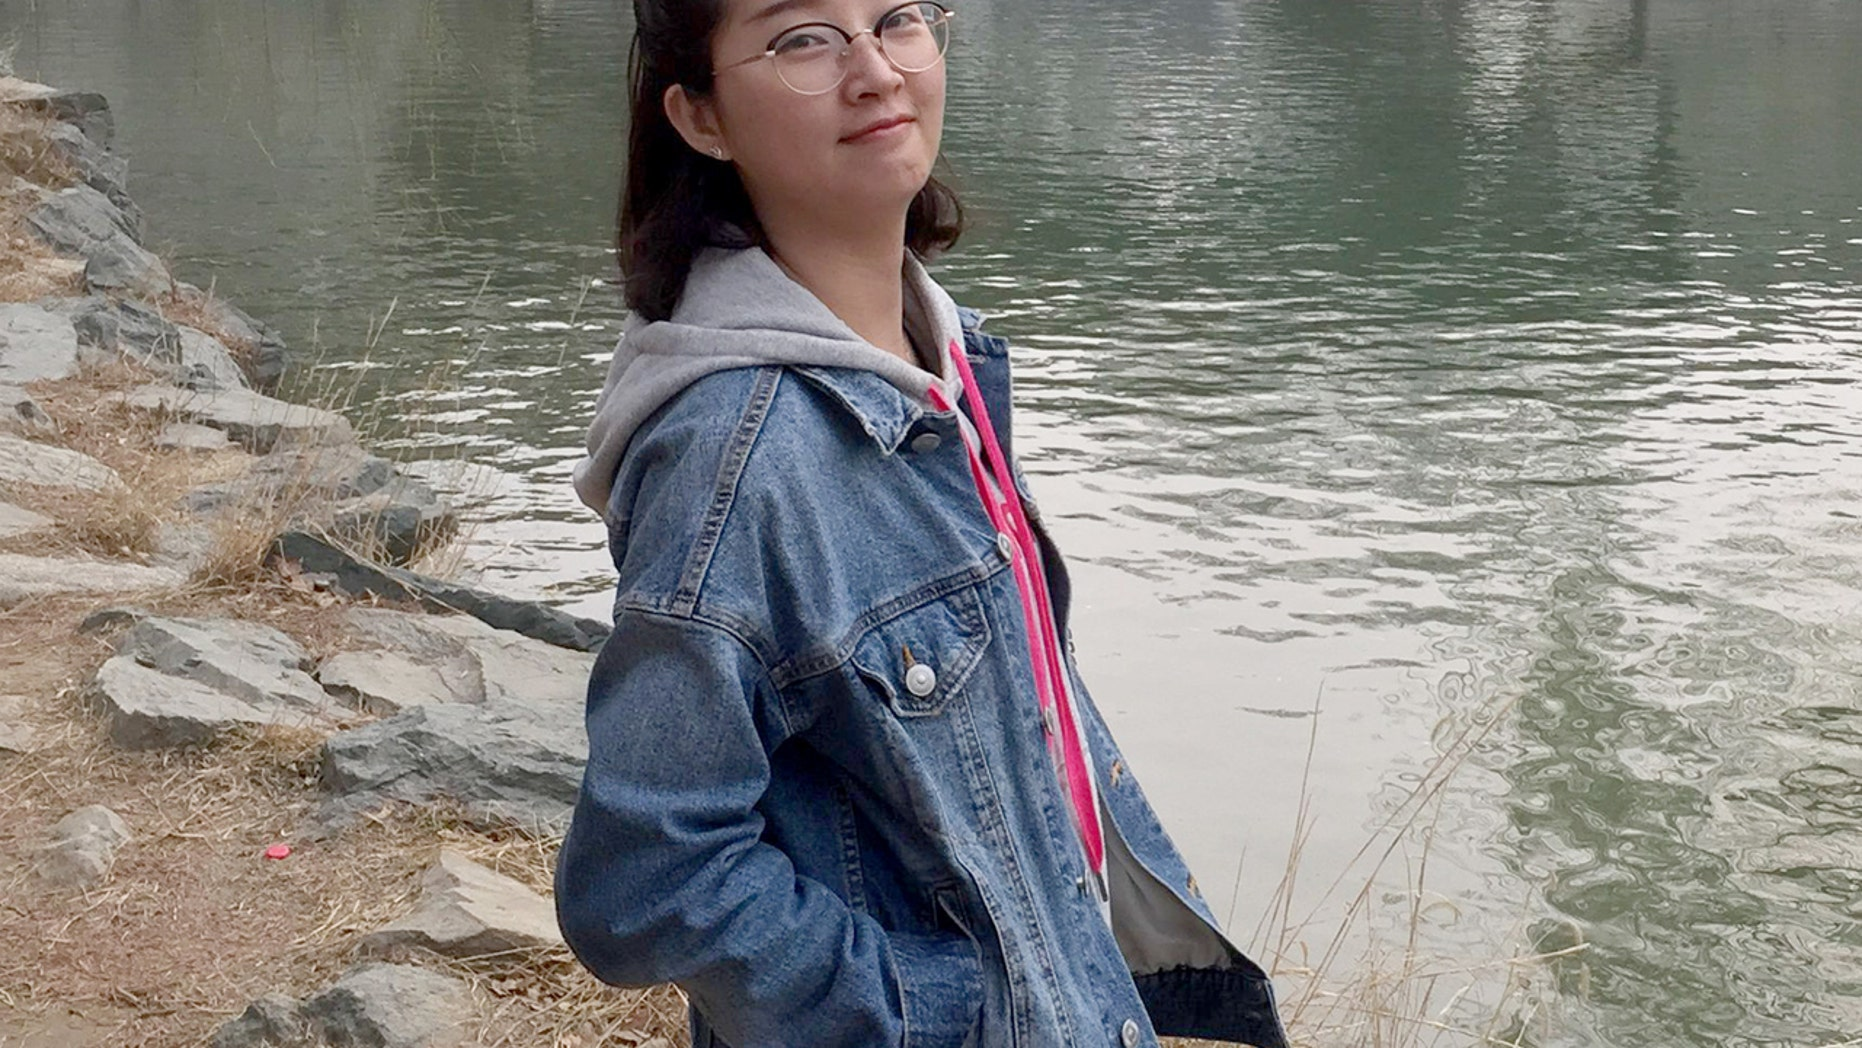 This undated photo provided by the University of Illinois Police Department shows Yingying Zhang.